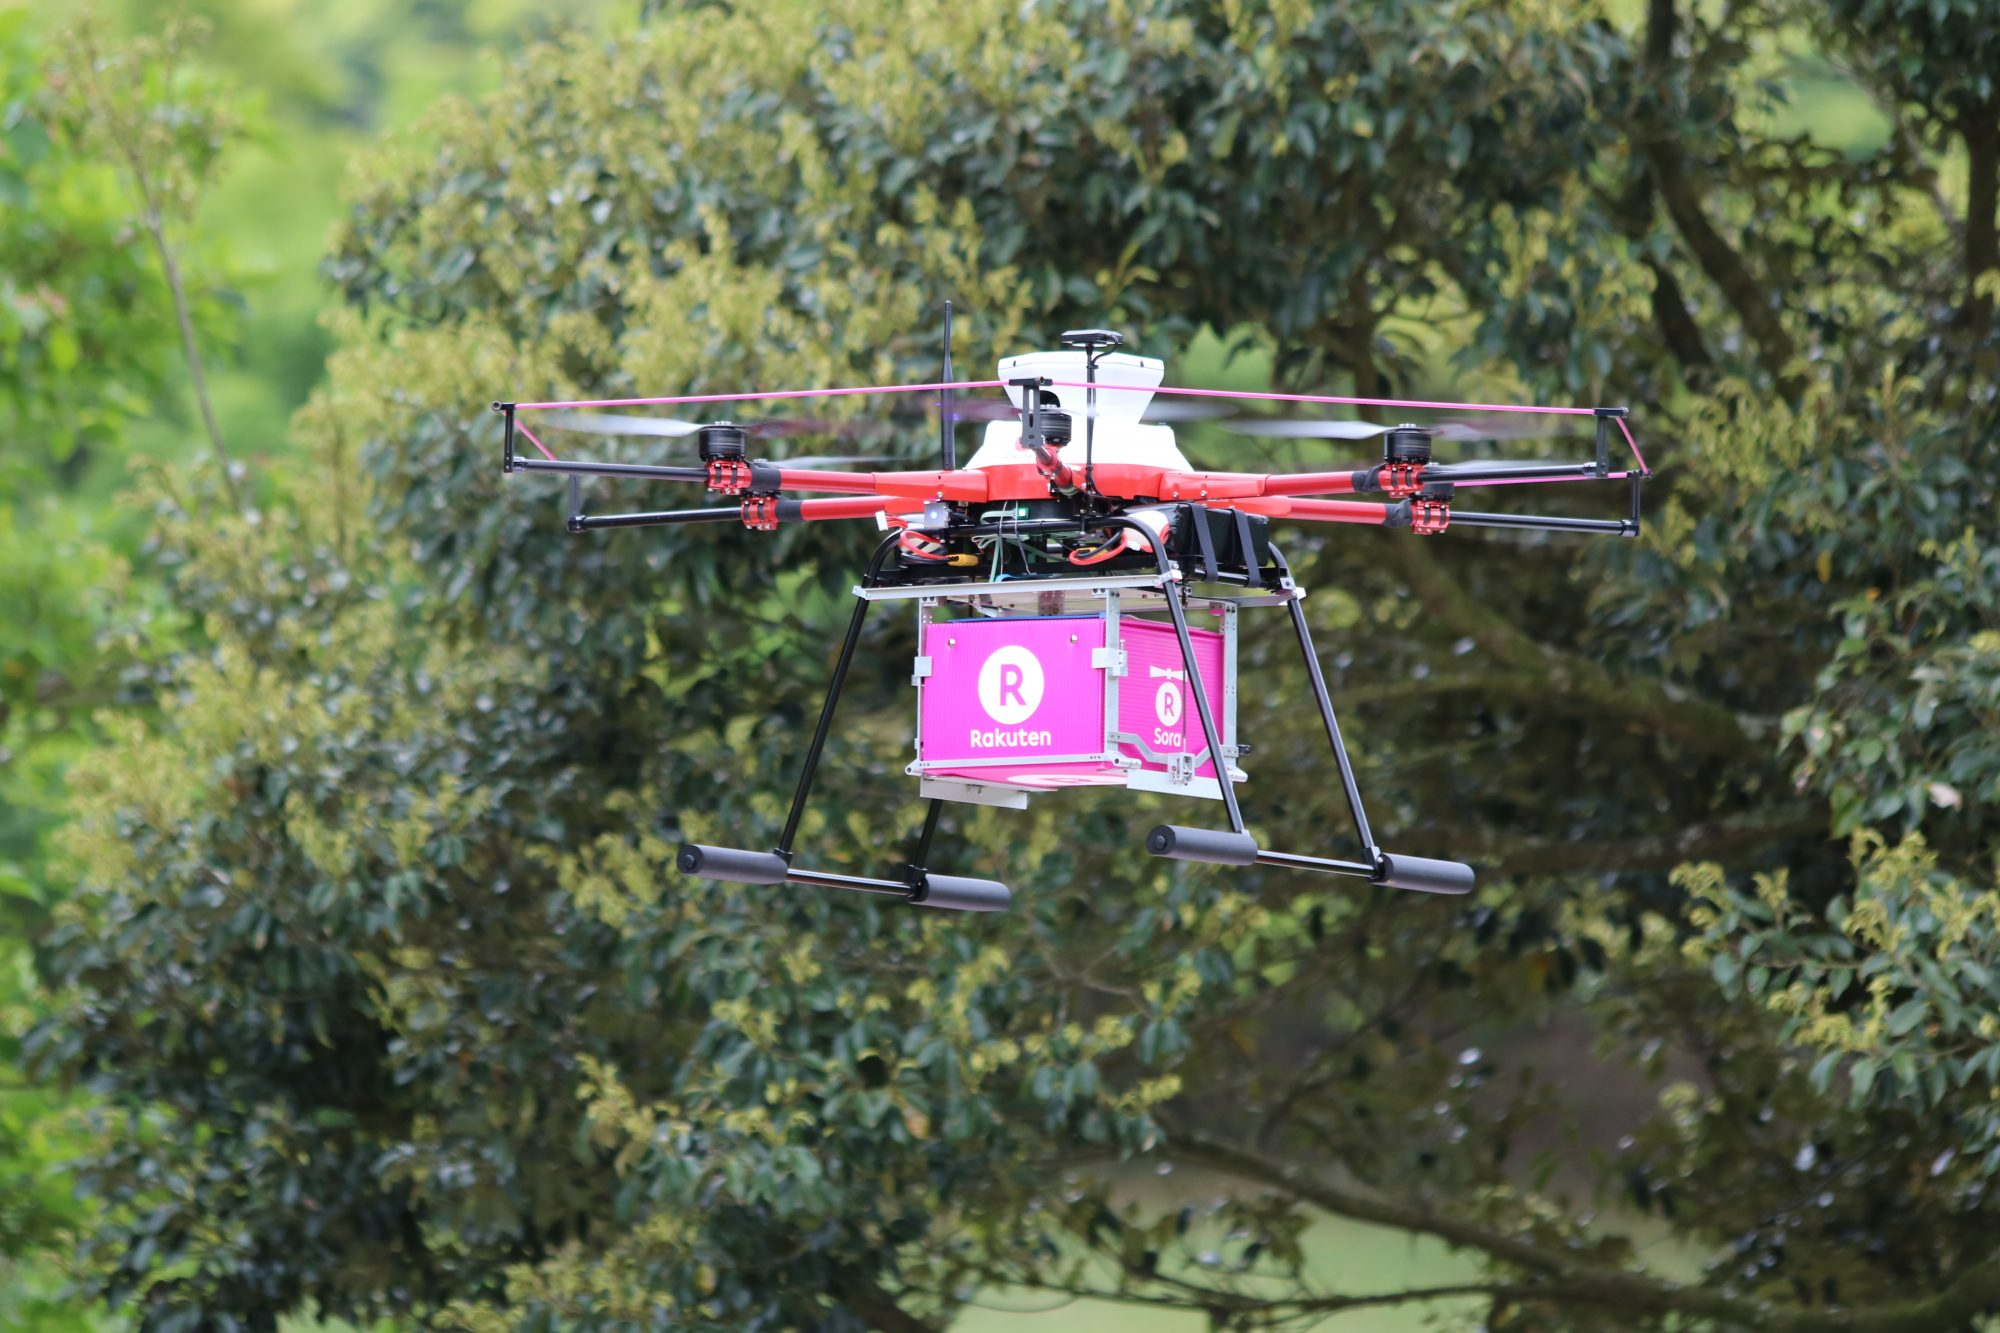 Rakuten drone delivers flowers for Mother's Day